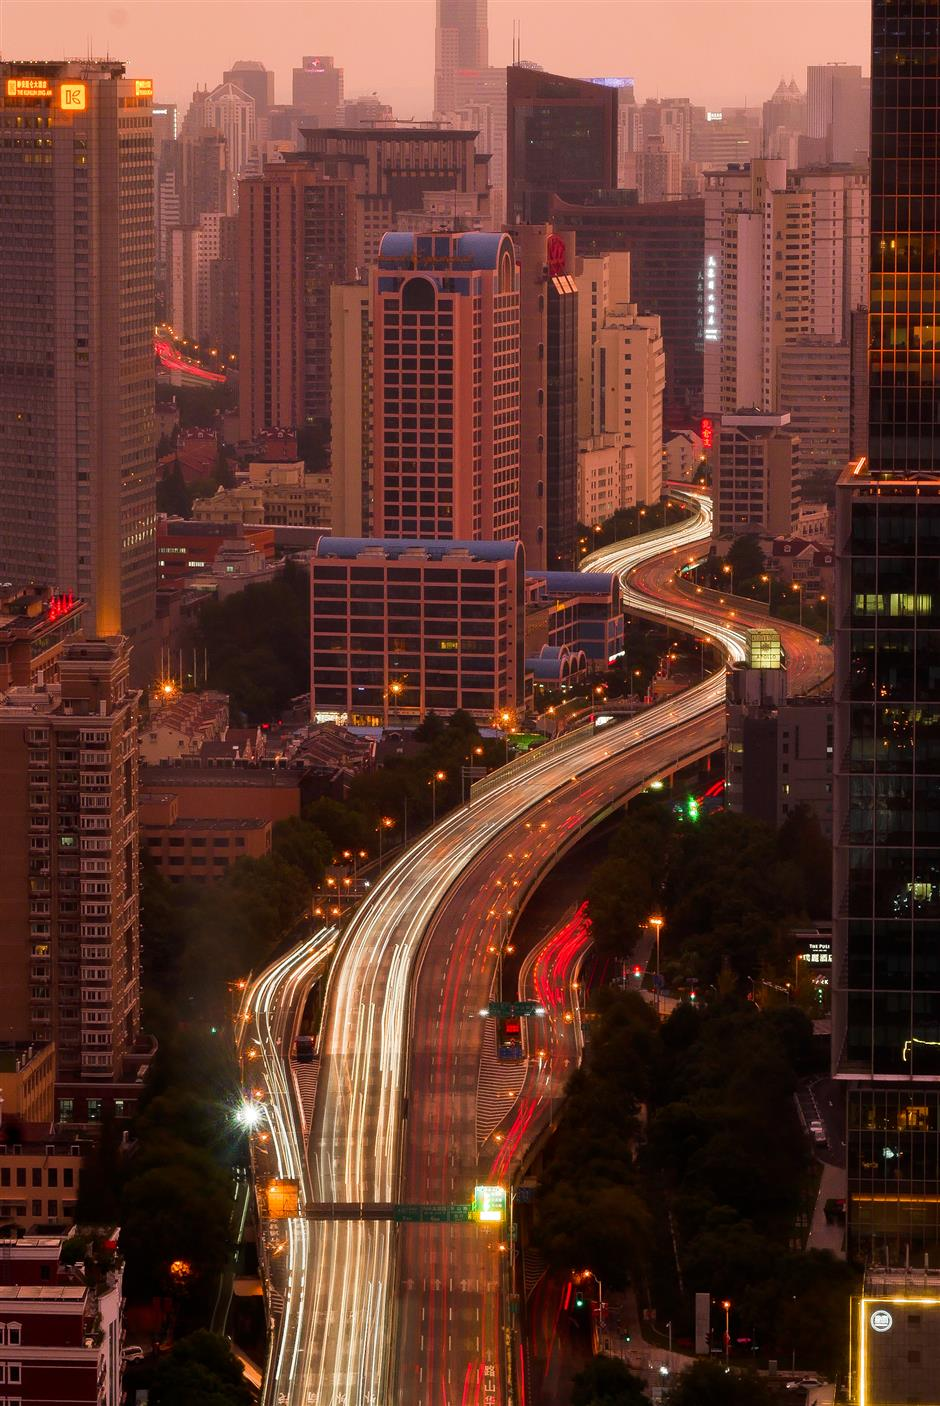 Shanghai: a city in flux